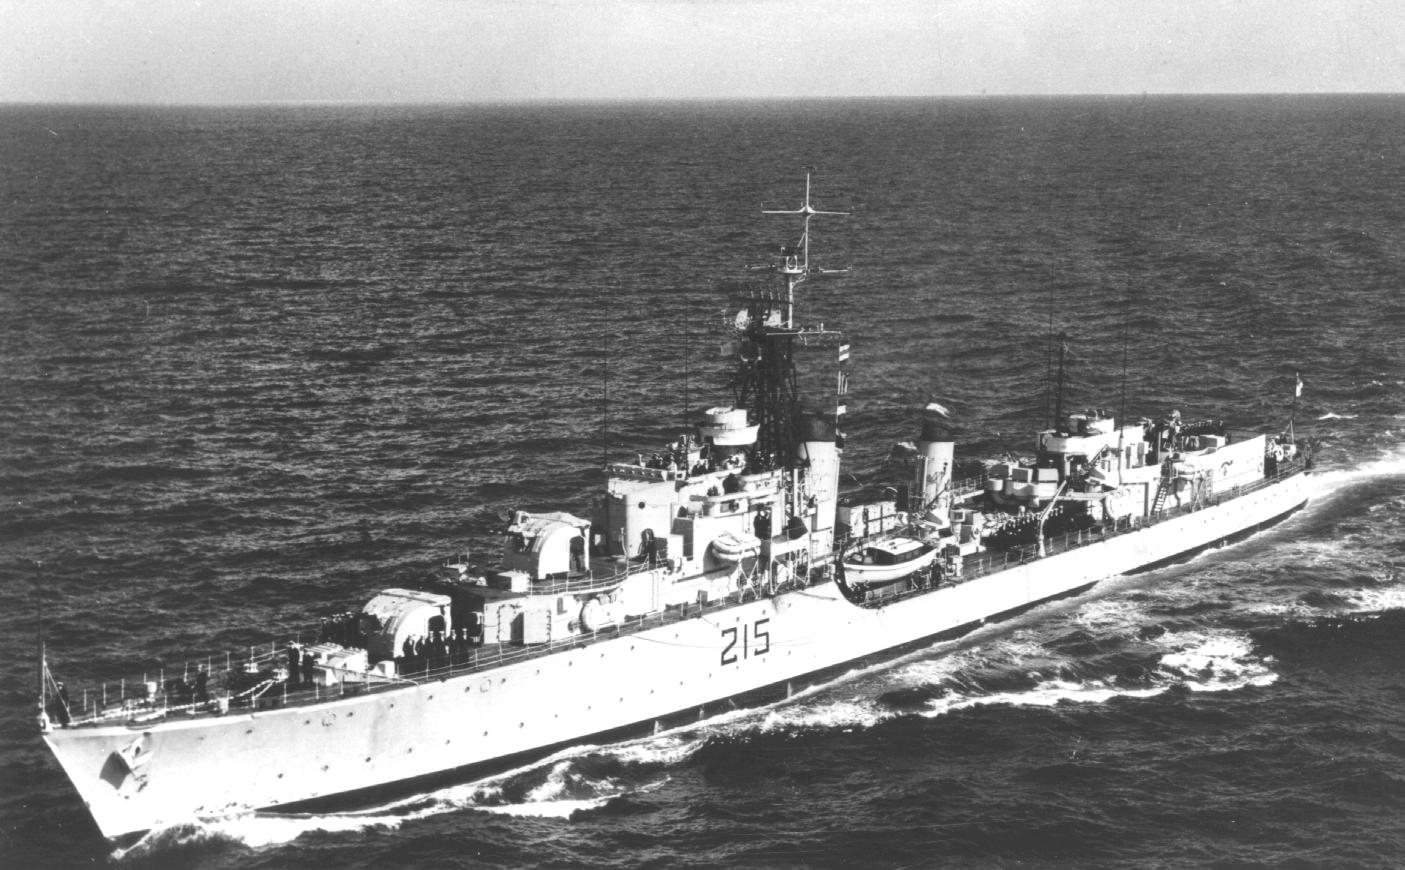 HMCS Haida at sea in the late 50s